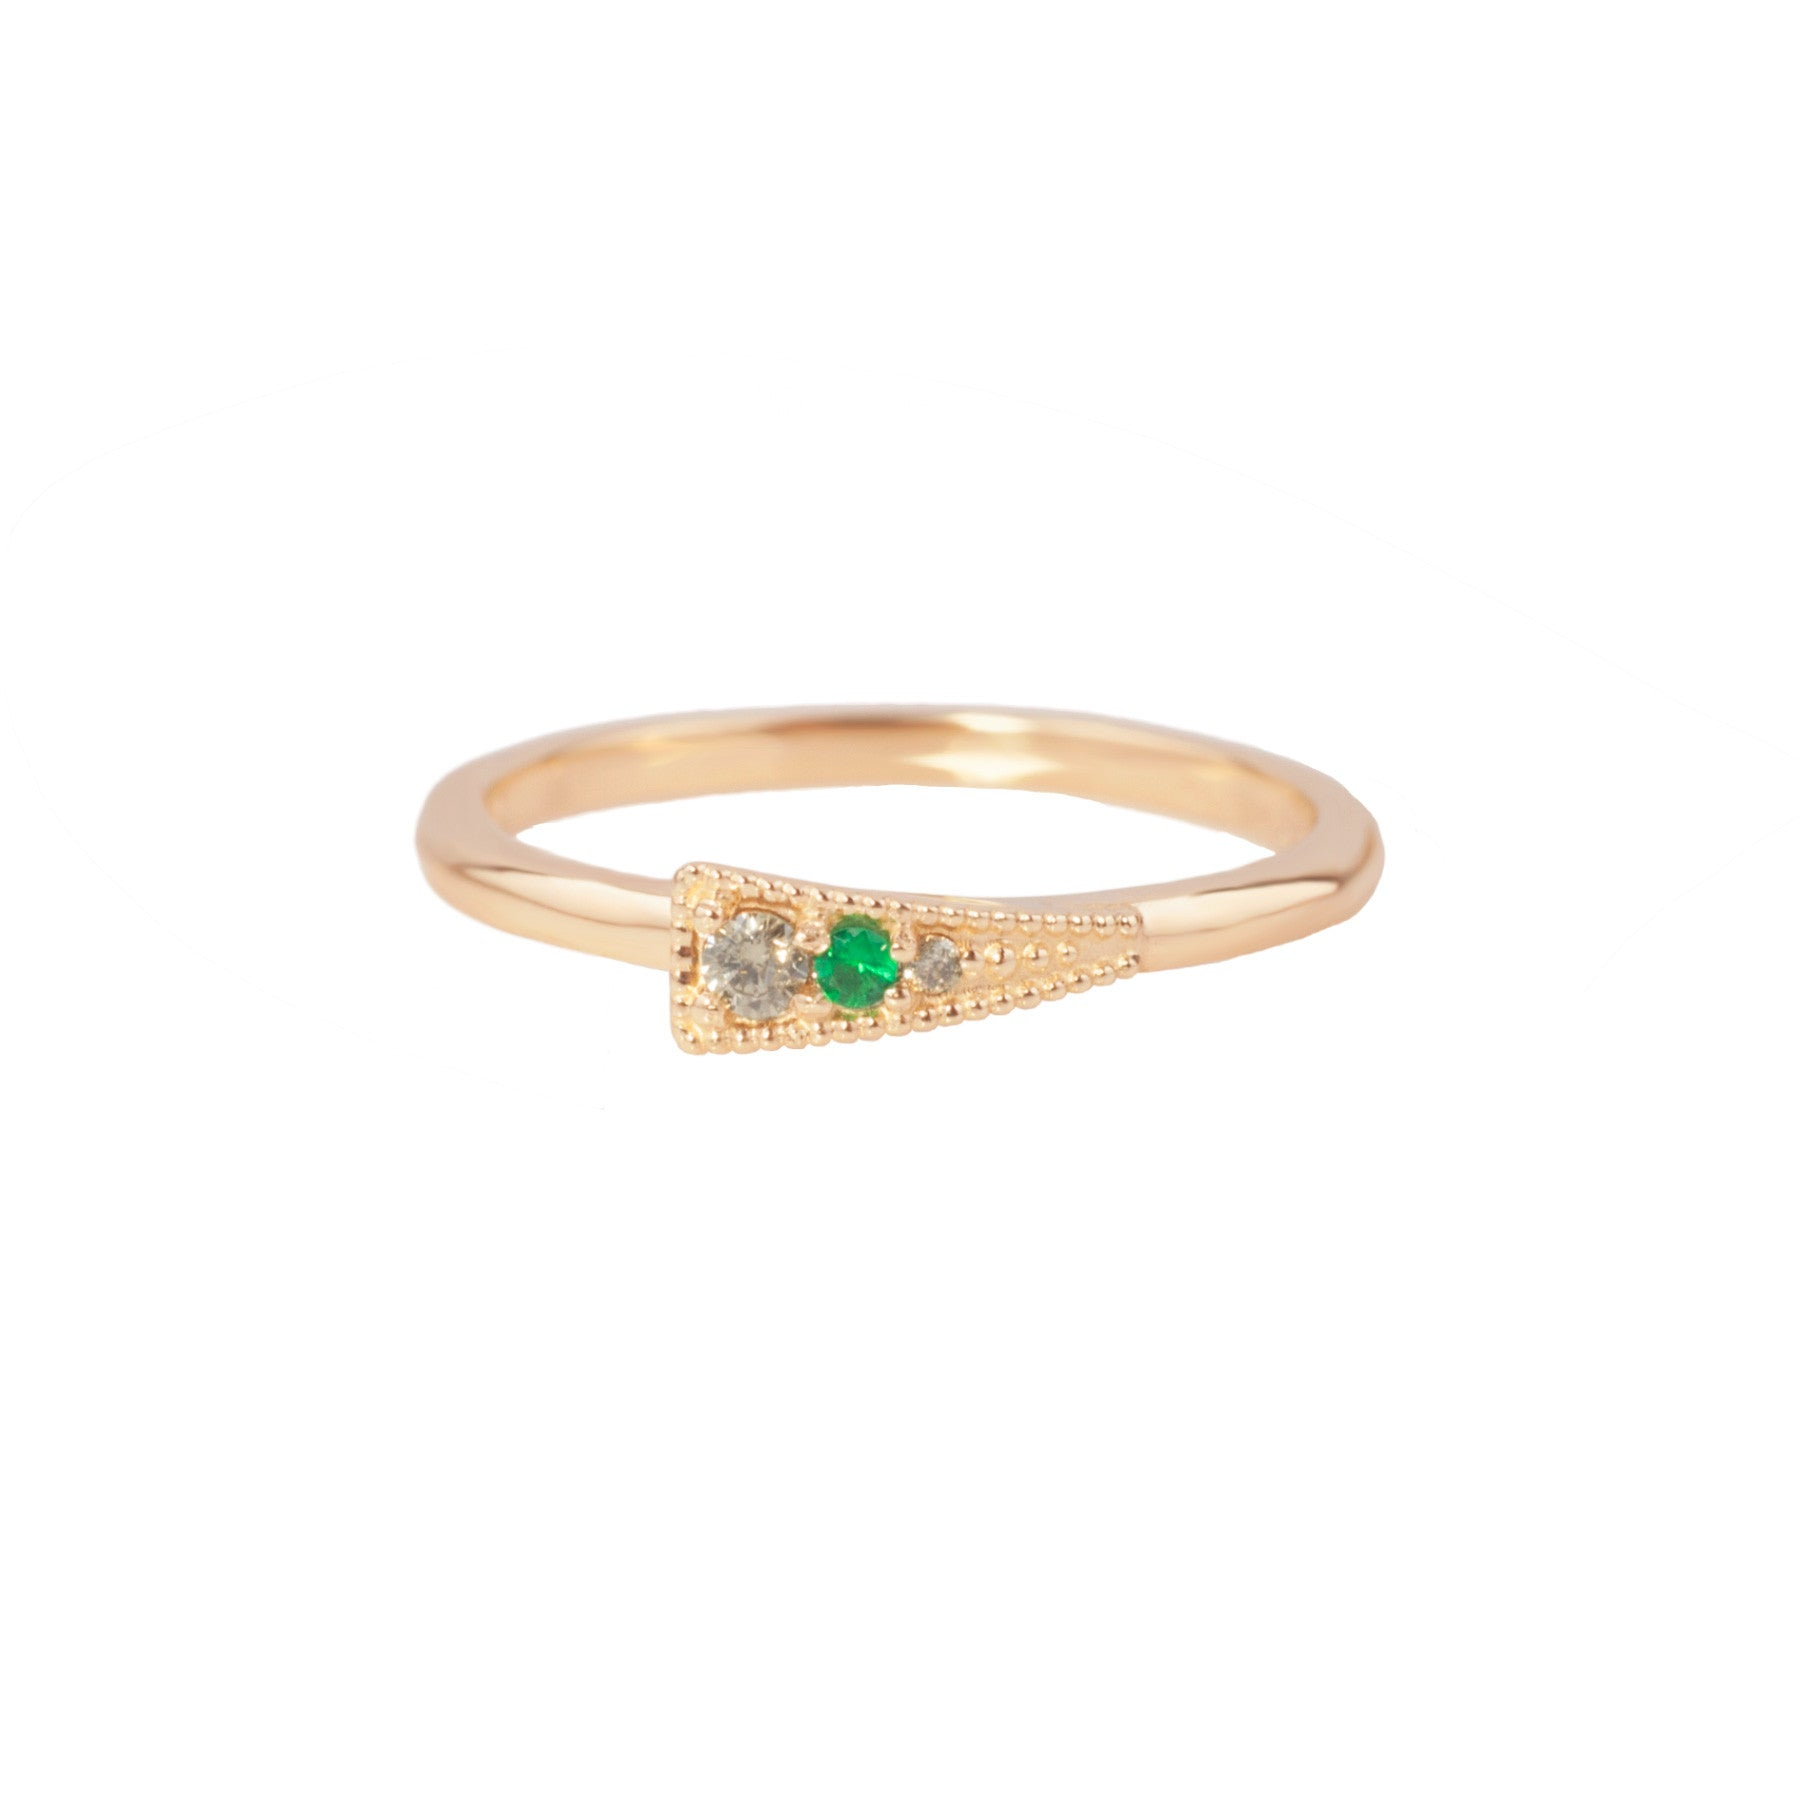 EMERALD + DIAMOND ARROWHEAD RING